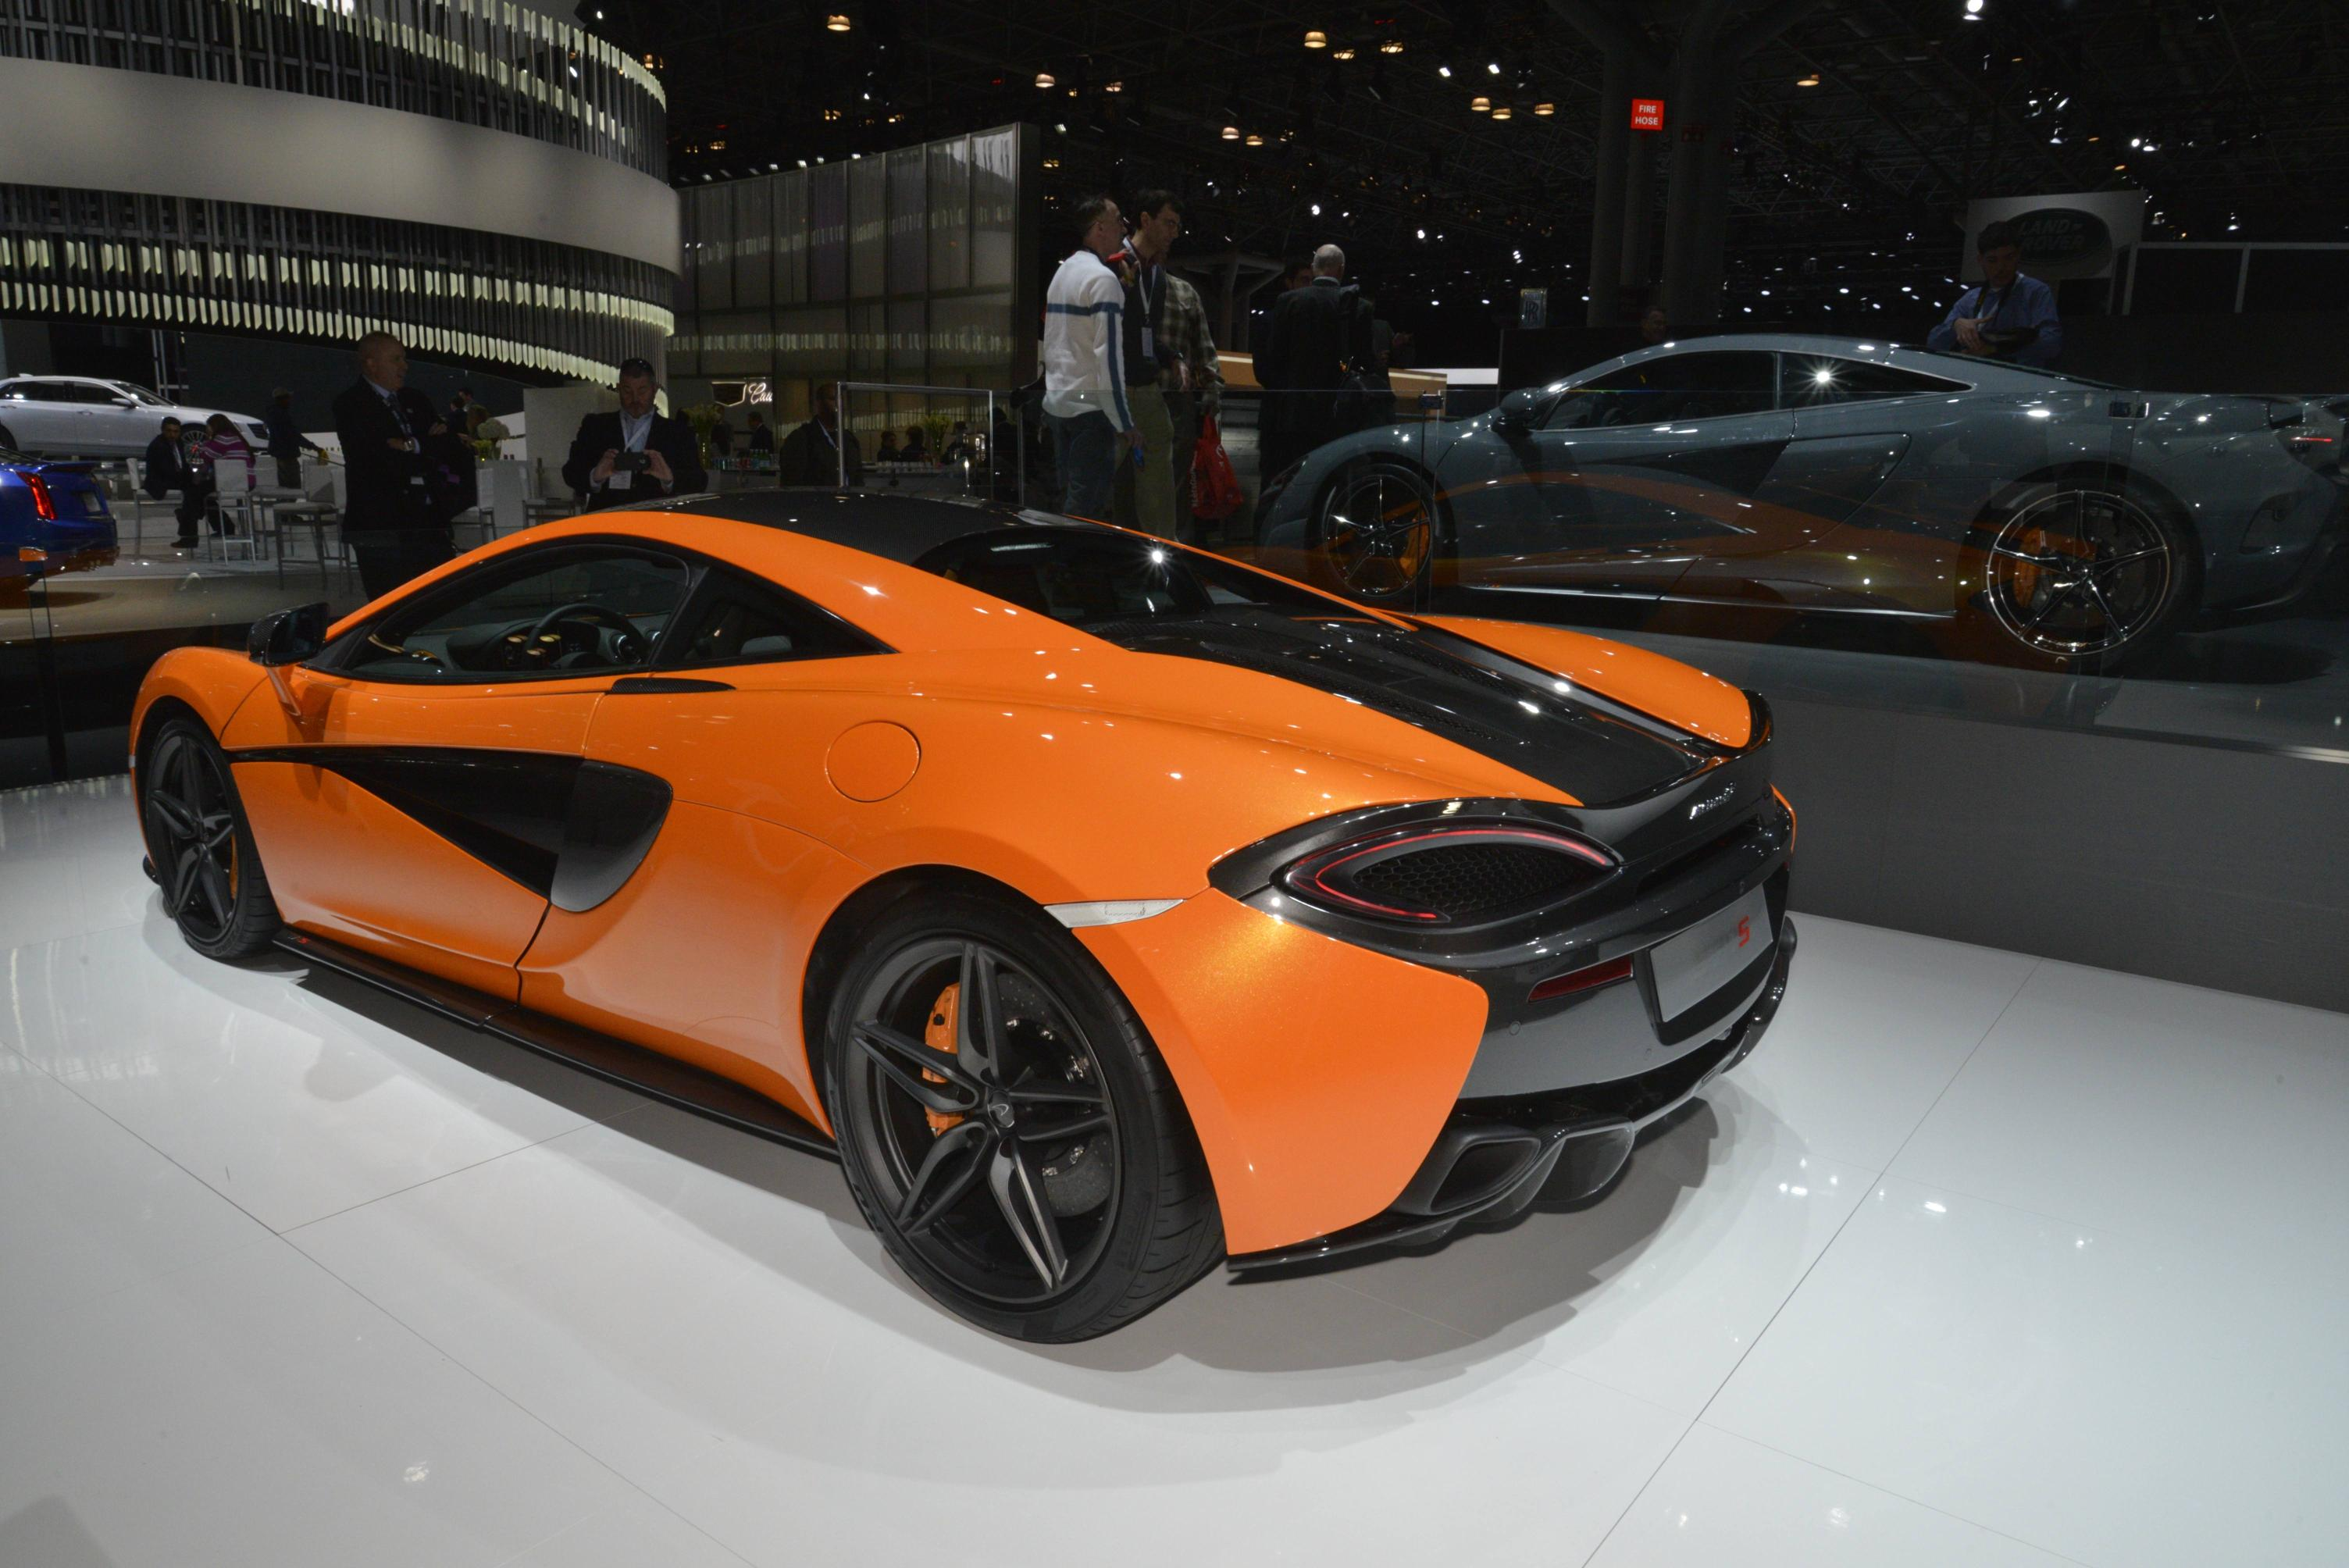 mclaren 570s pricing: $184,900 in the us, £143,250 in the uk